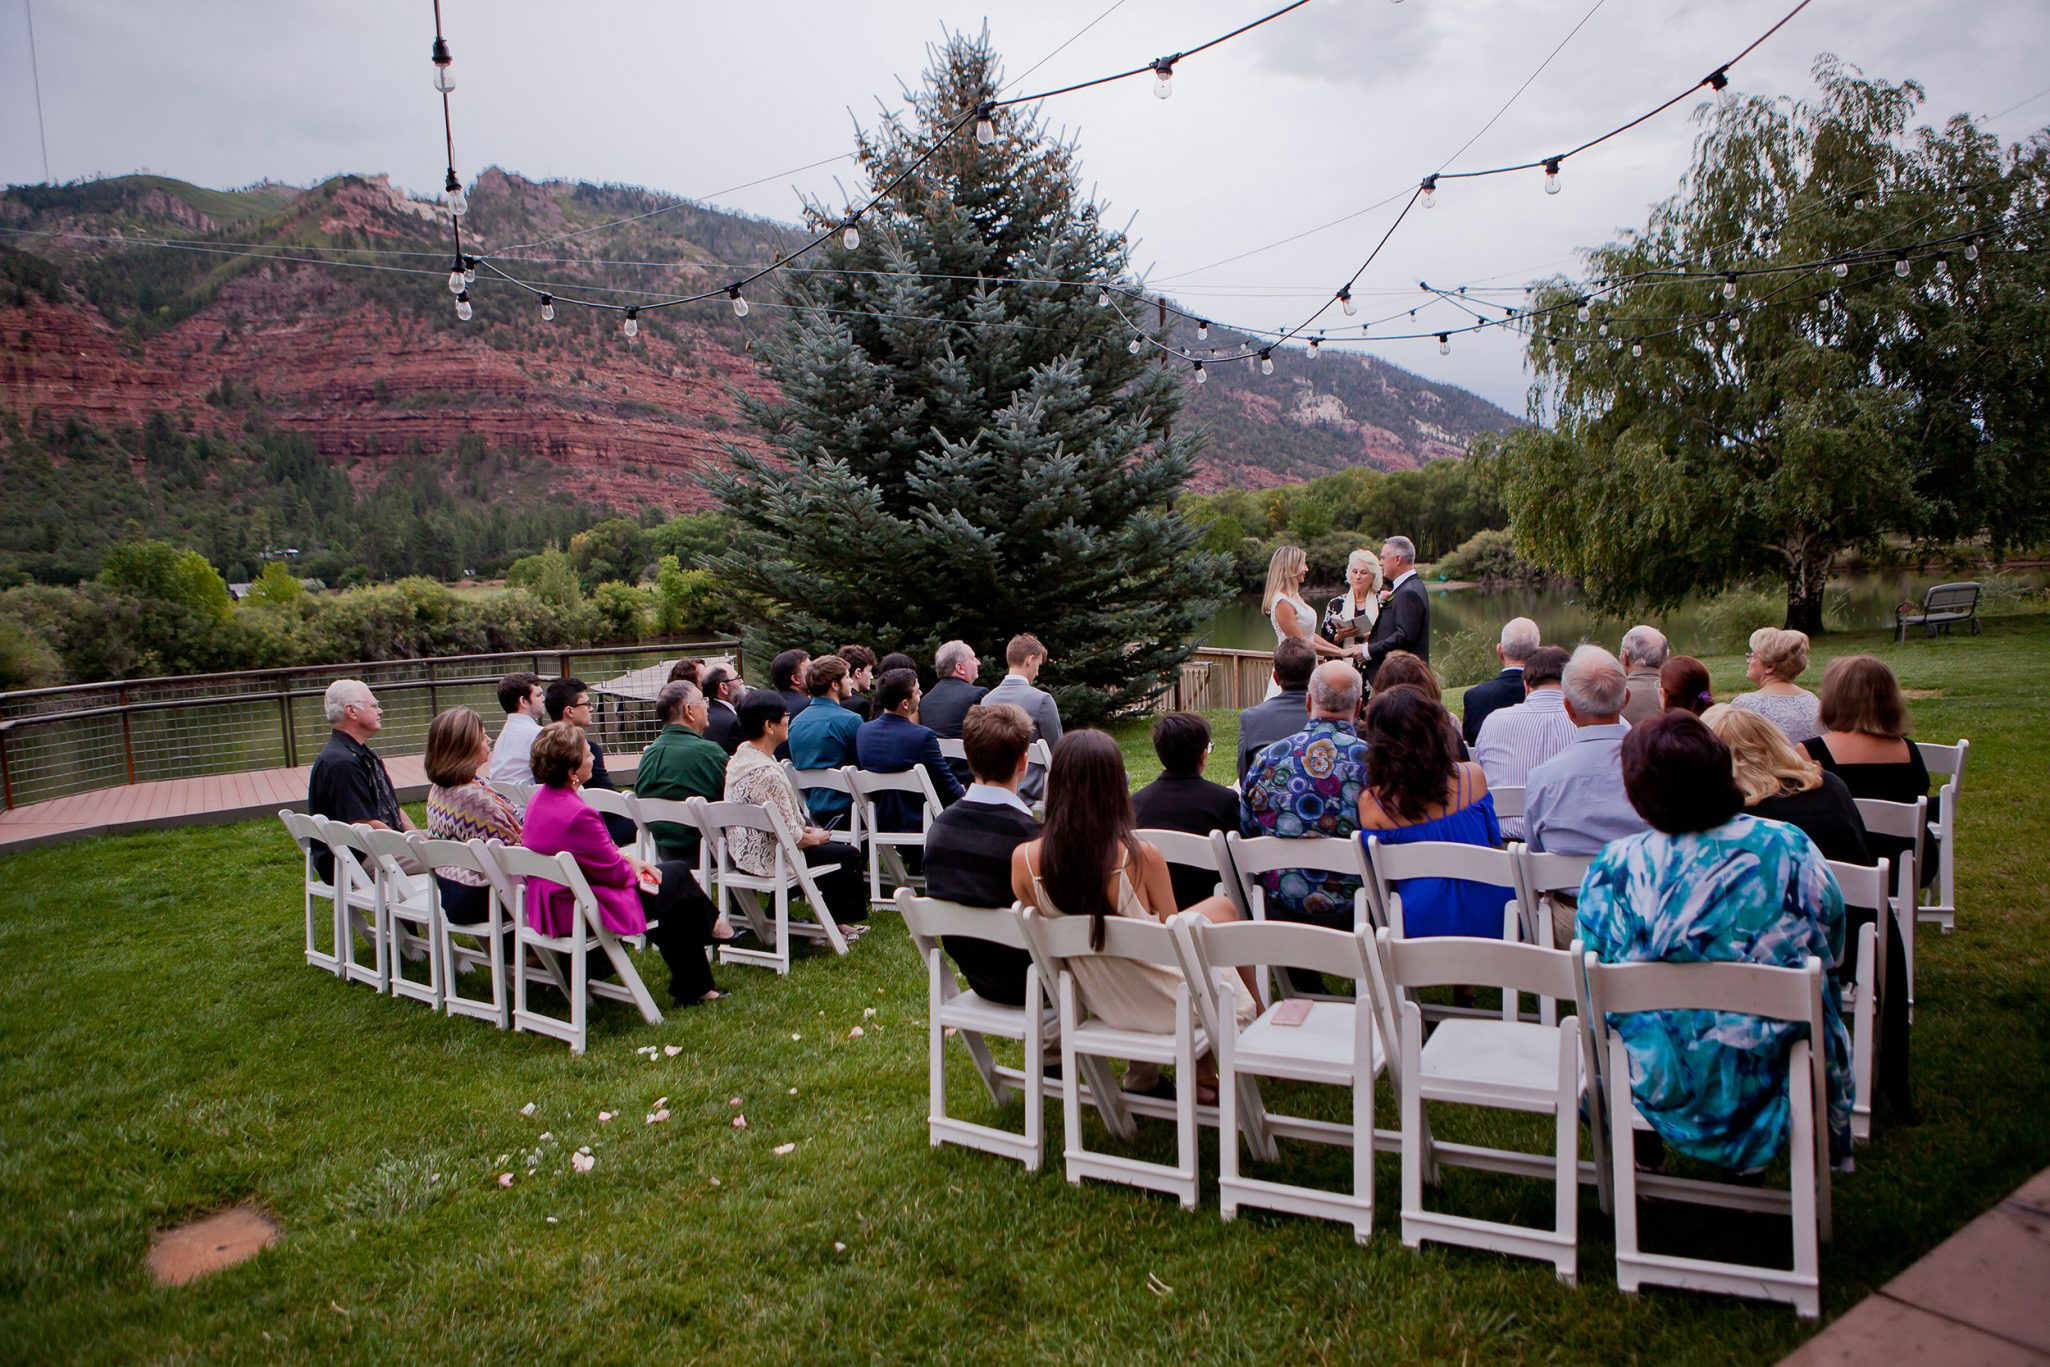 Outdoor ceremony | A Simple Durango Wedding Planned in Three Months at River Bend Ranch